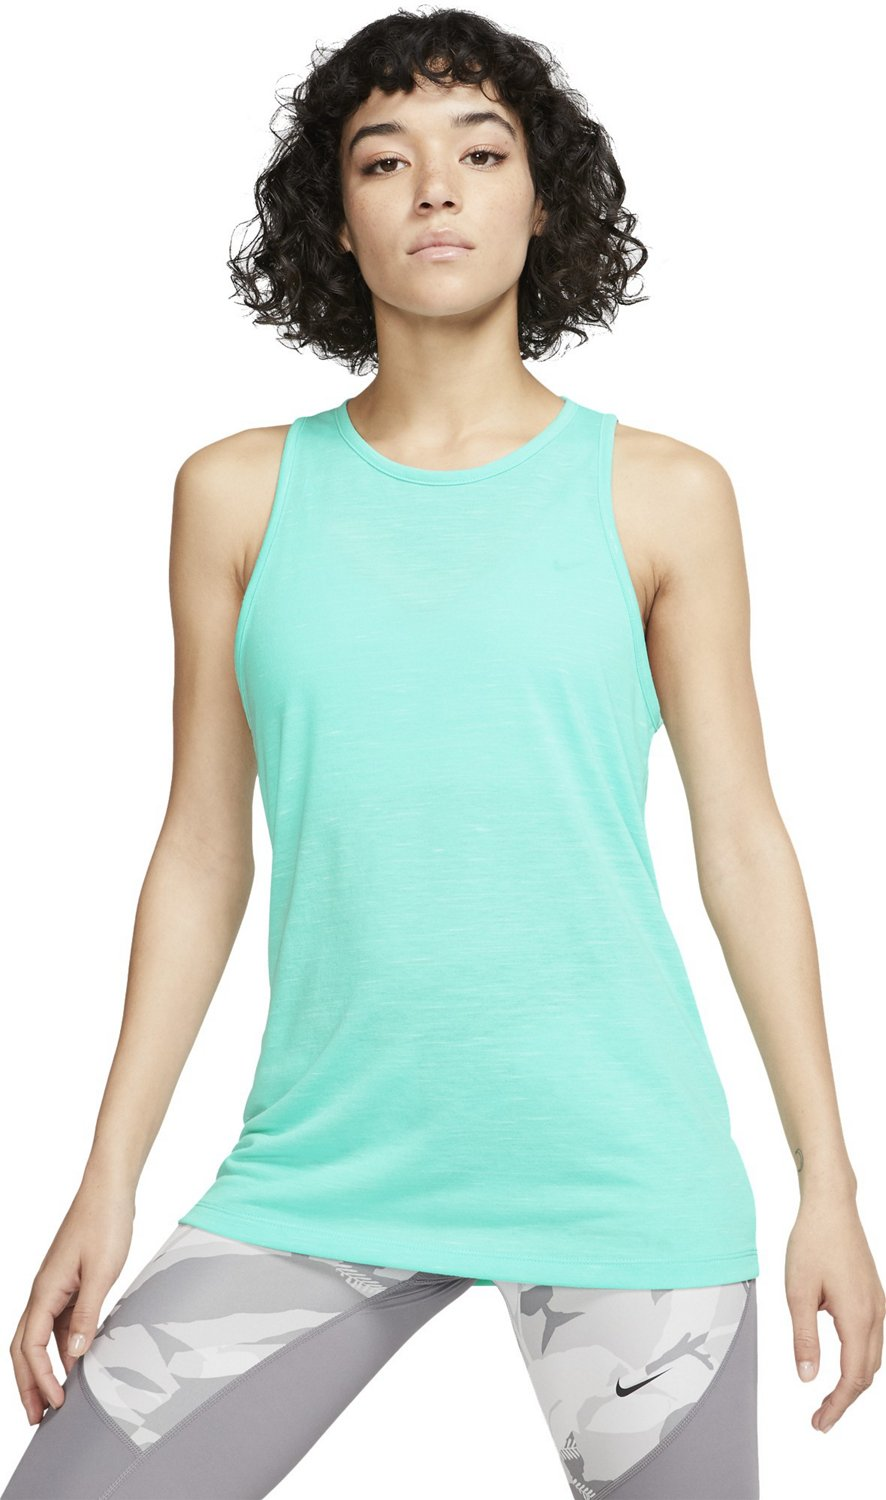 d32660adf9d Display product reviews for Nike Women s Dry Legend Tomboy Tank Top